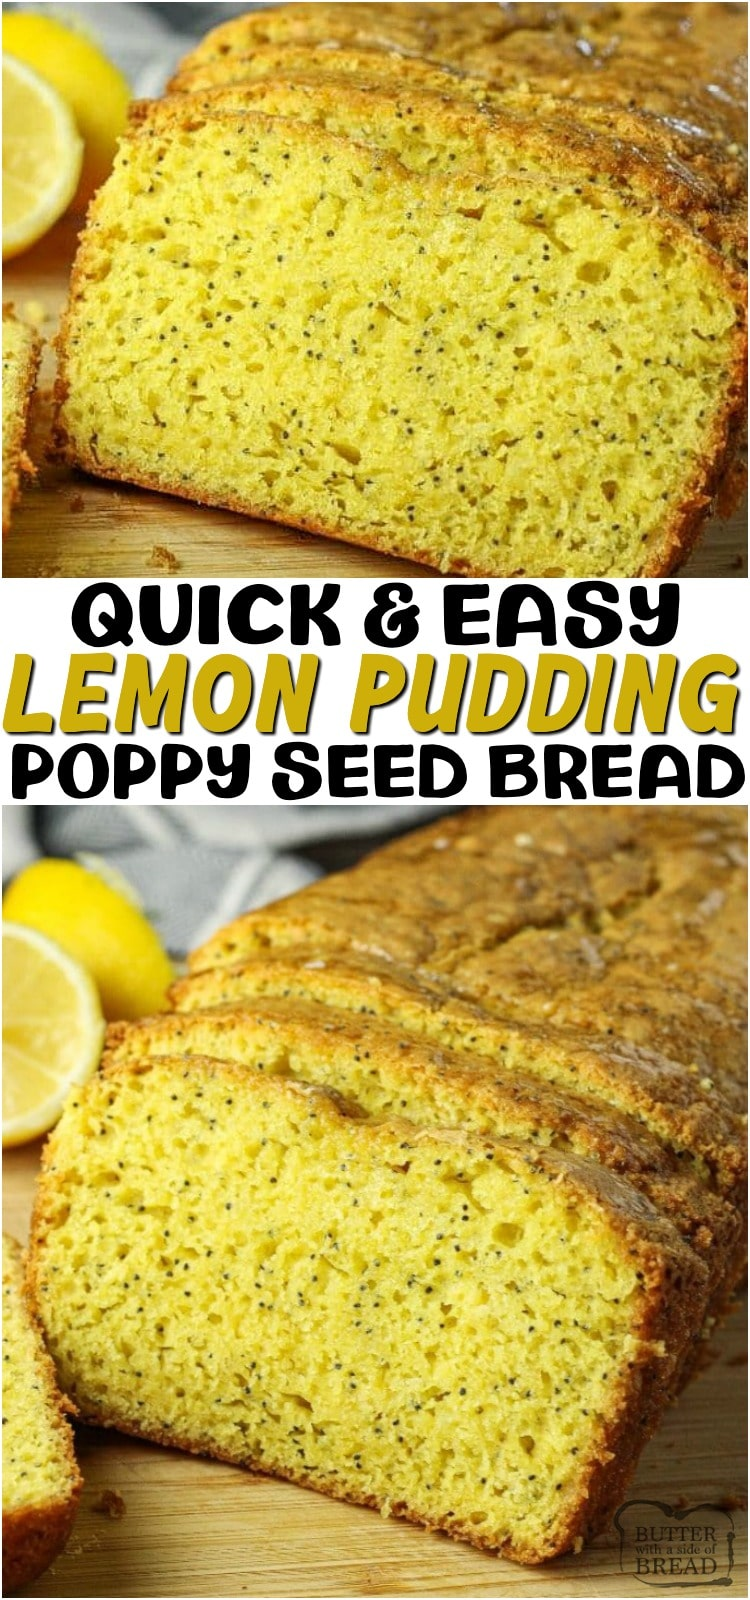 Easy Lemon Poppy Seed Bread is a simple, sweet bread recipe that is made with just a few ingredients. Cake mix & lemon pudding mix make this quick bread come together fast. This simple quick bread recipe will be one you will want to make over and over again. #bread #lemon #quickbread #poppyseed #baking #recipe from BUTTER WITH A SIDE OF BREAD